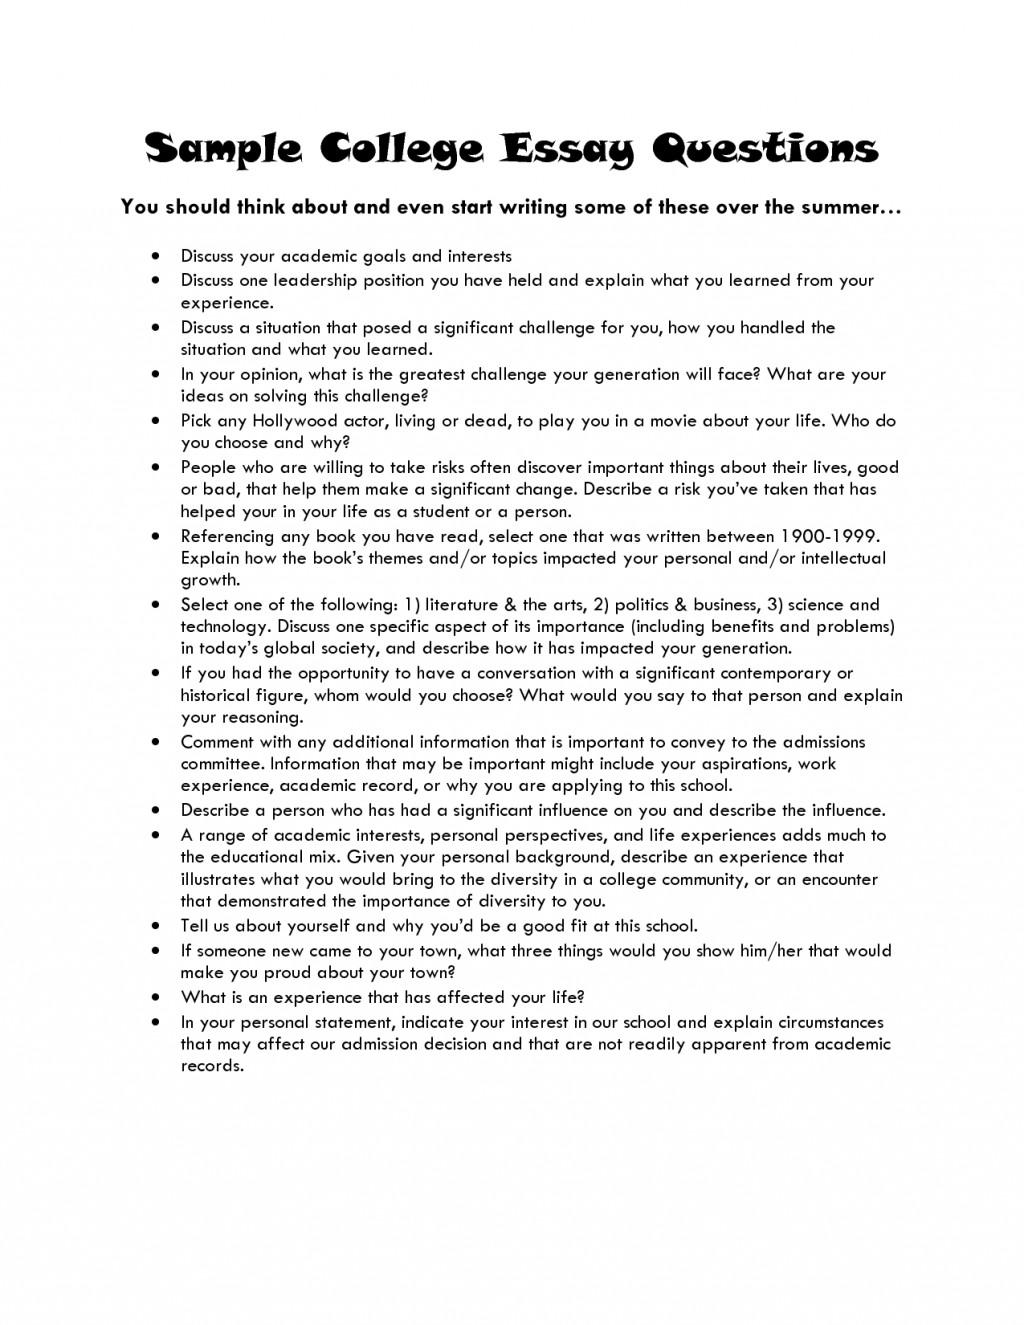 015 Essay Example Academic Goals Sample College Questions L Virginia Tech Imposing Prompts How To Answer 2017 Large